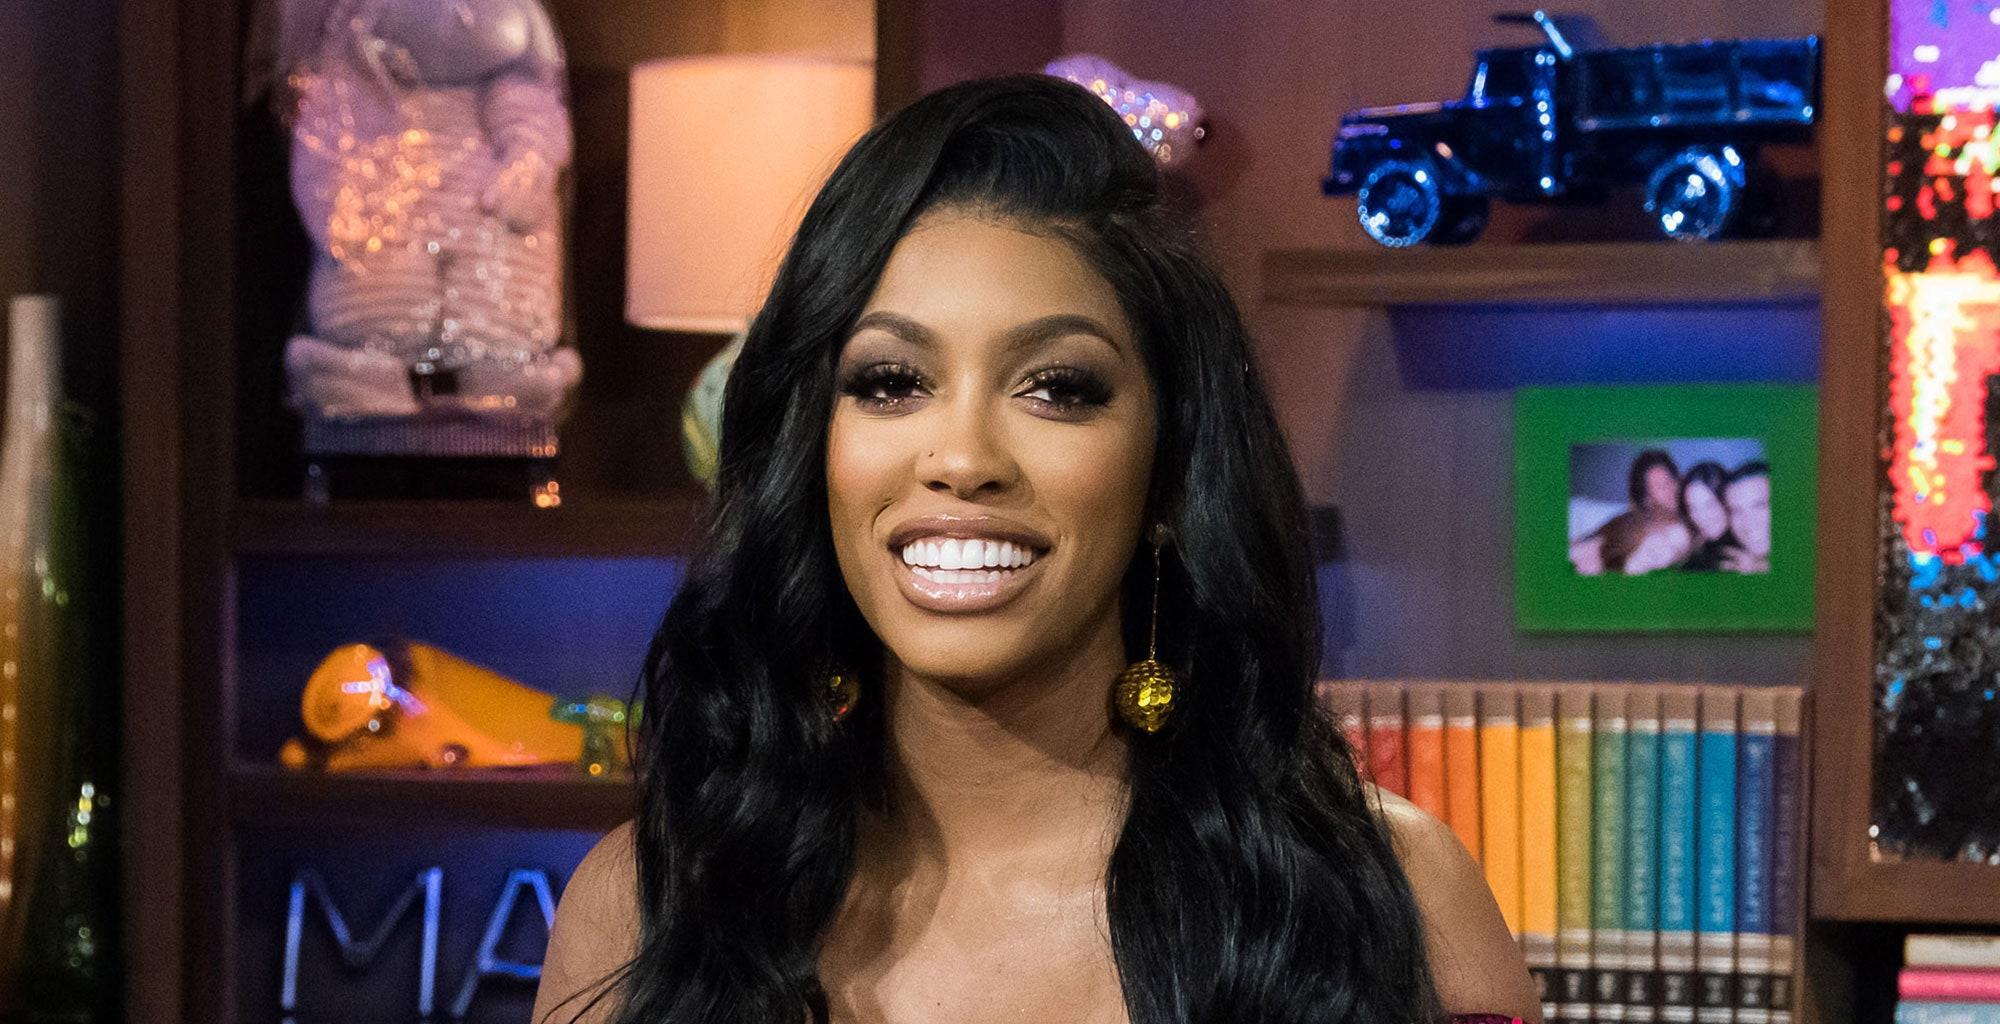 Goofy Porsha Williams Shows Off Some Sensual Moves For The 'Gram - Check Out Her Clip Here